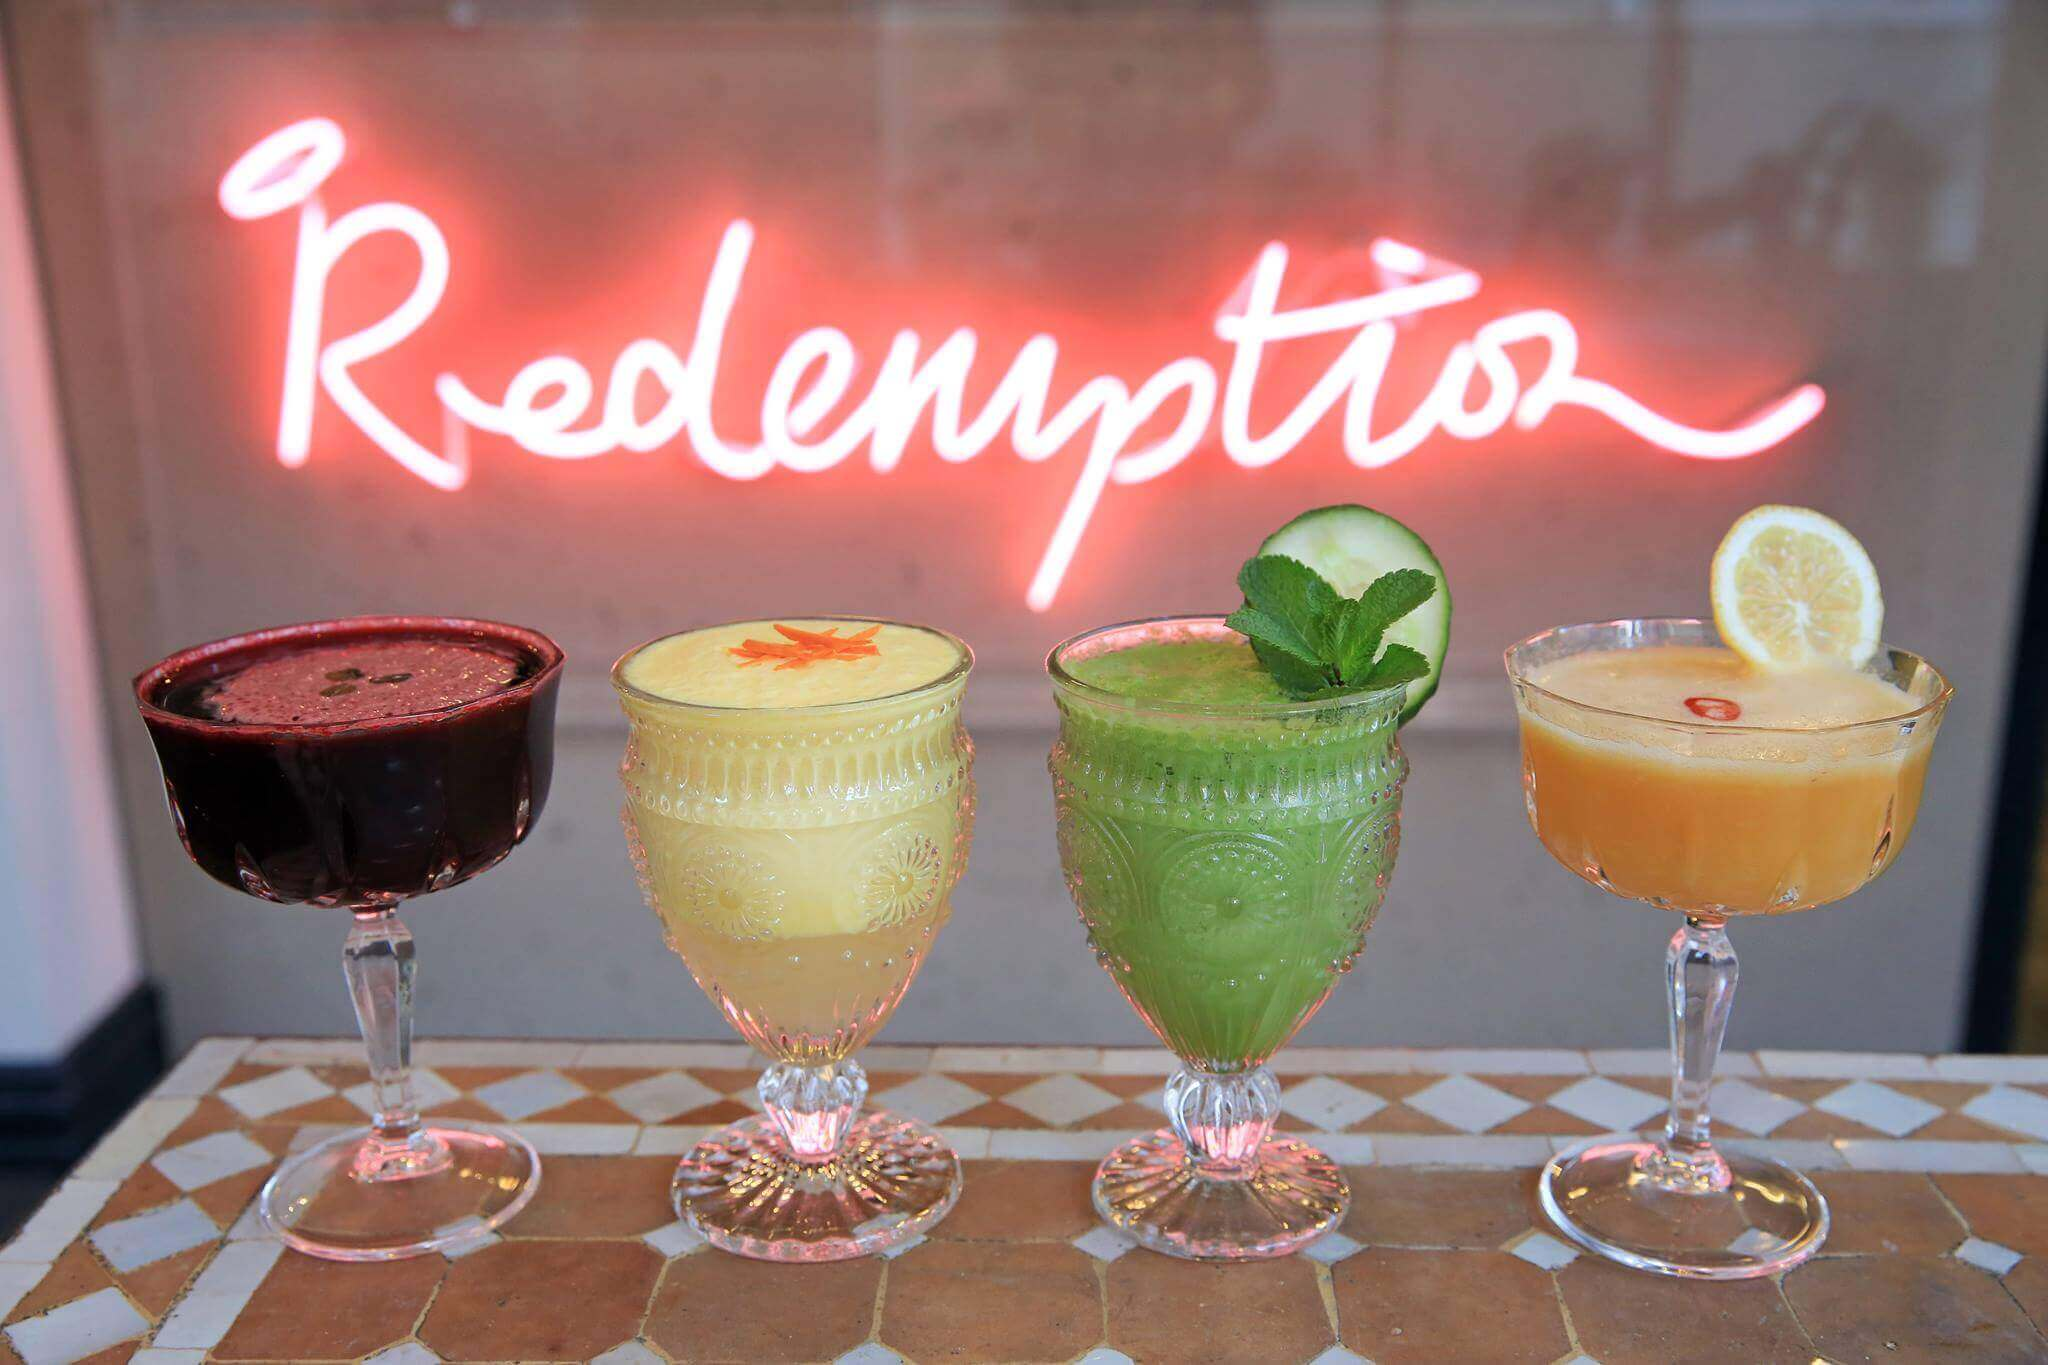 Redemption Bar at Covent Garden London